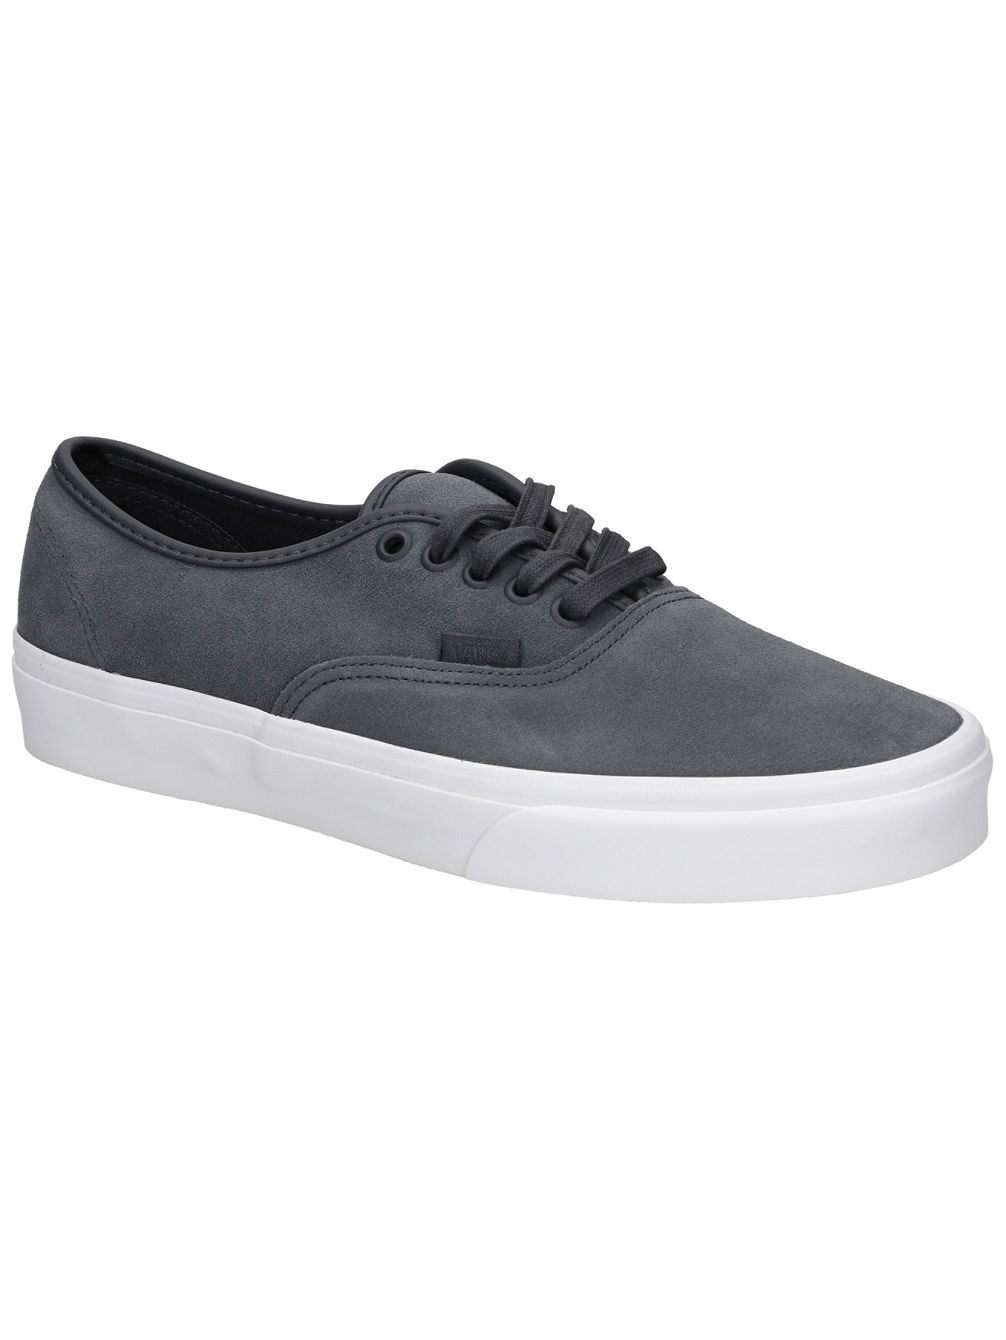 Soft Suede Authentic Sneakers